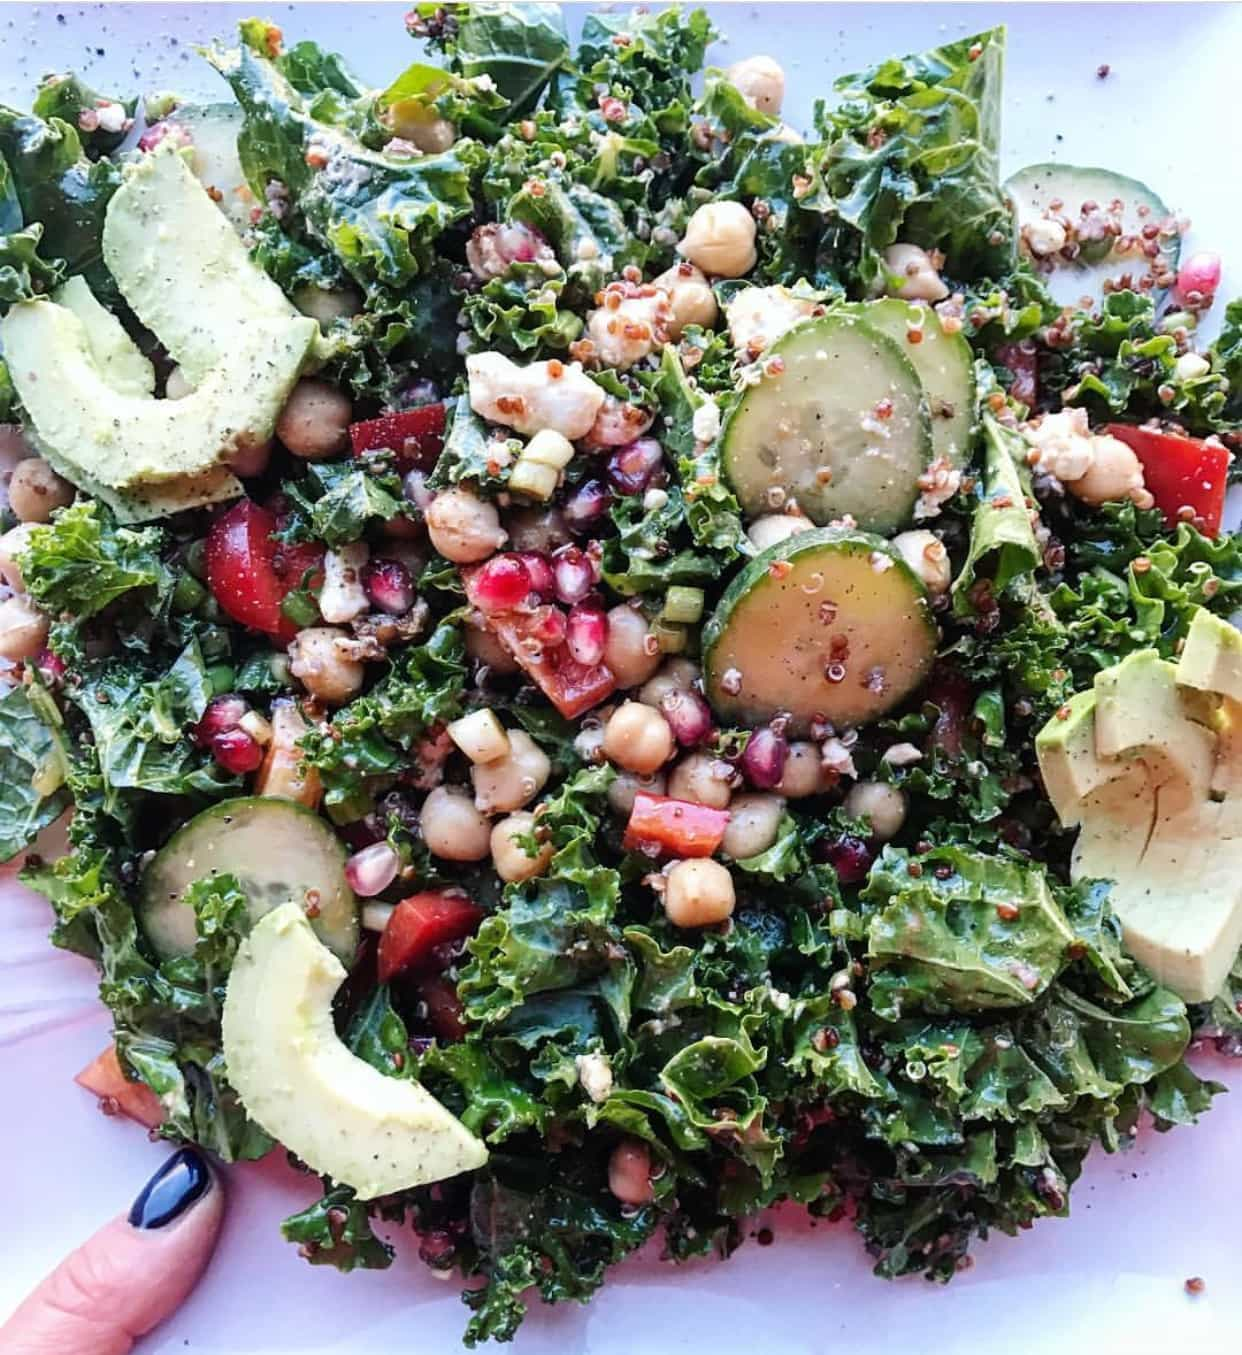 Signature healthy kale salad by Swoon Talent's food blogger Marla Meridith